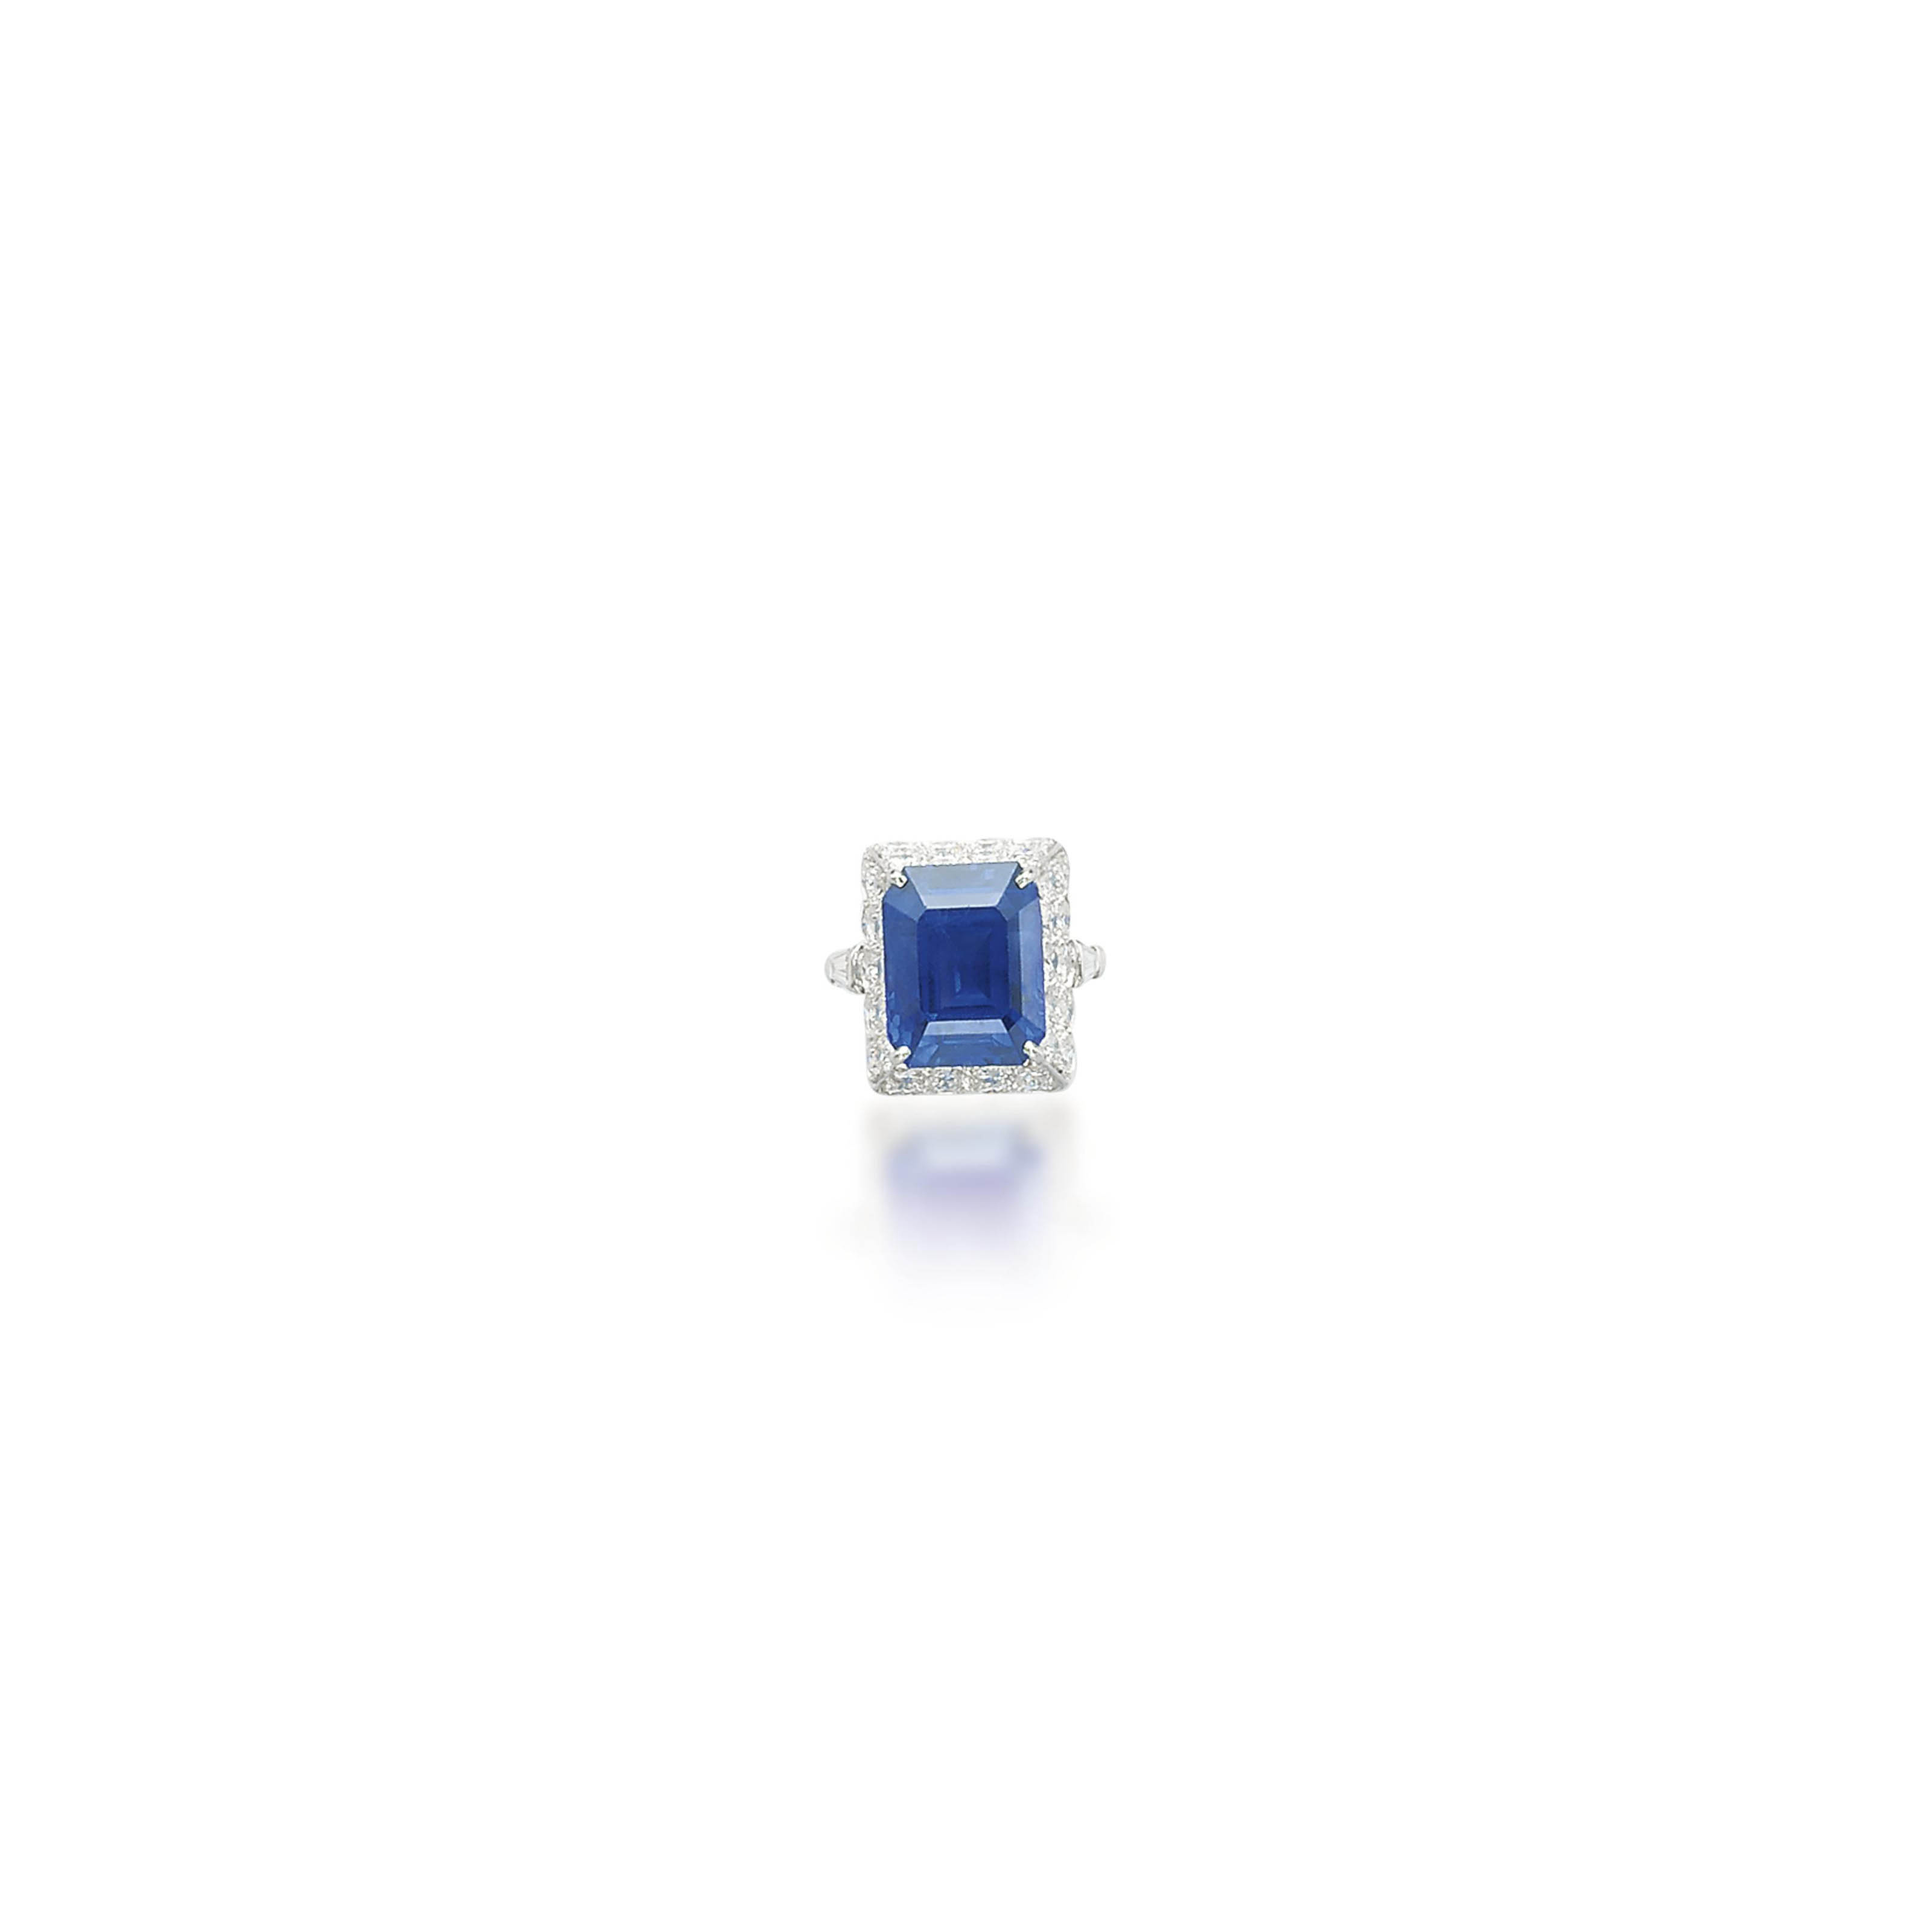 A SAPPHIRE AND DIAMOND RING, BY RUSER